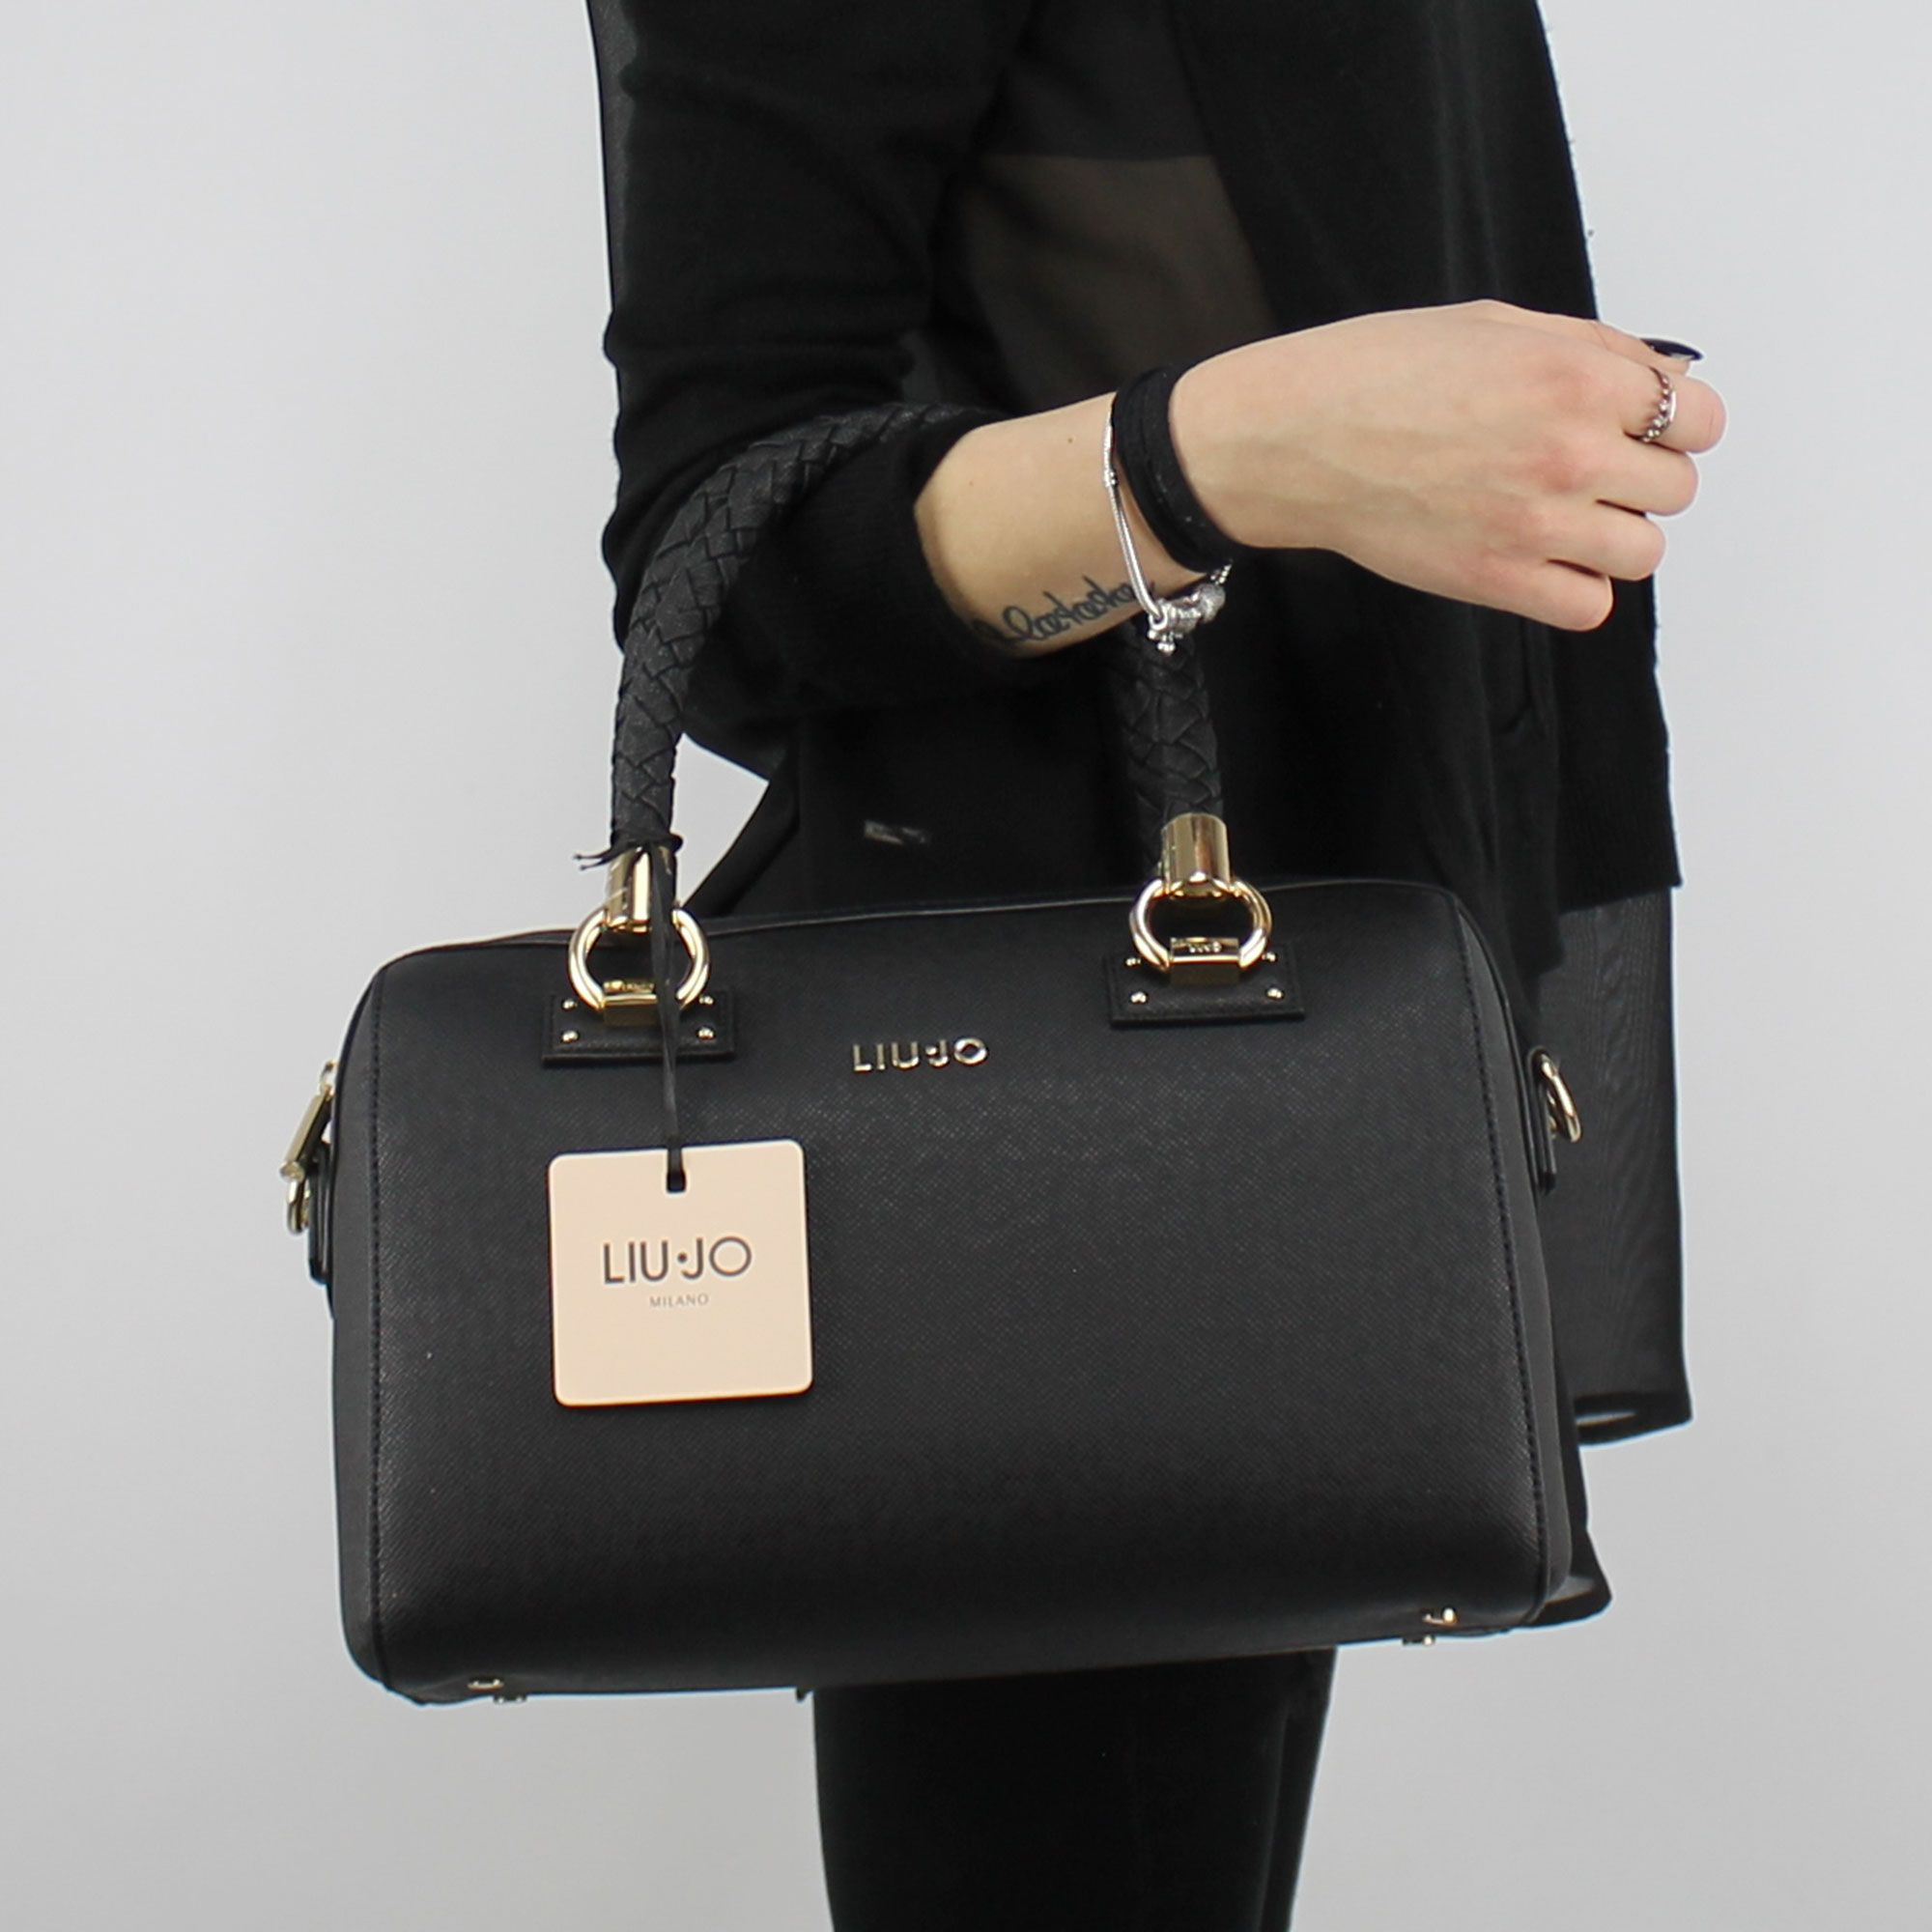 Borsa bauletto Liu Jo Satchel Manhattan nero A18080 E0499 - In More ... e5e3d9da6e6